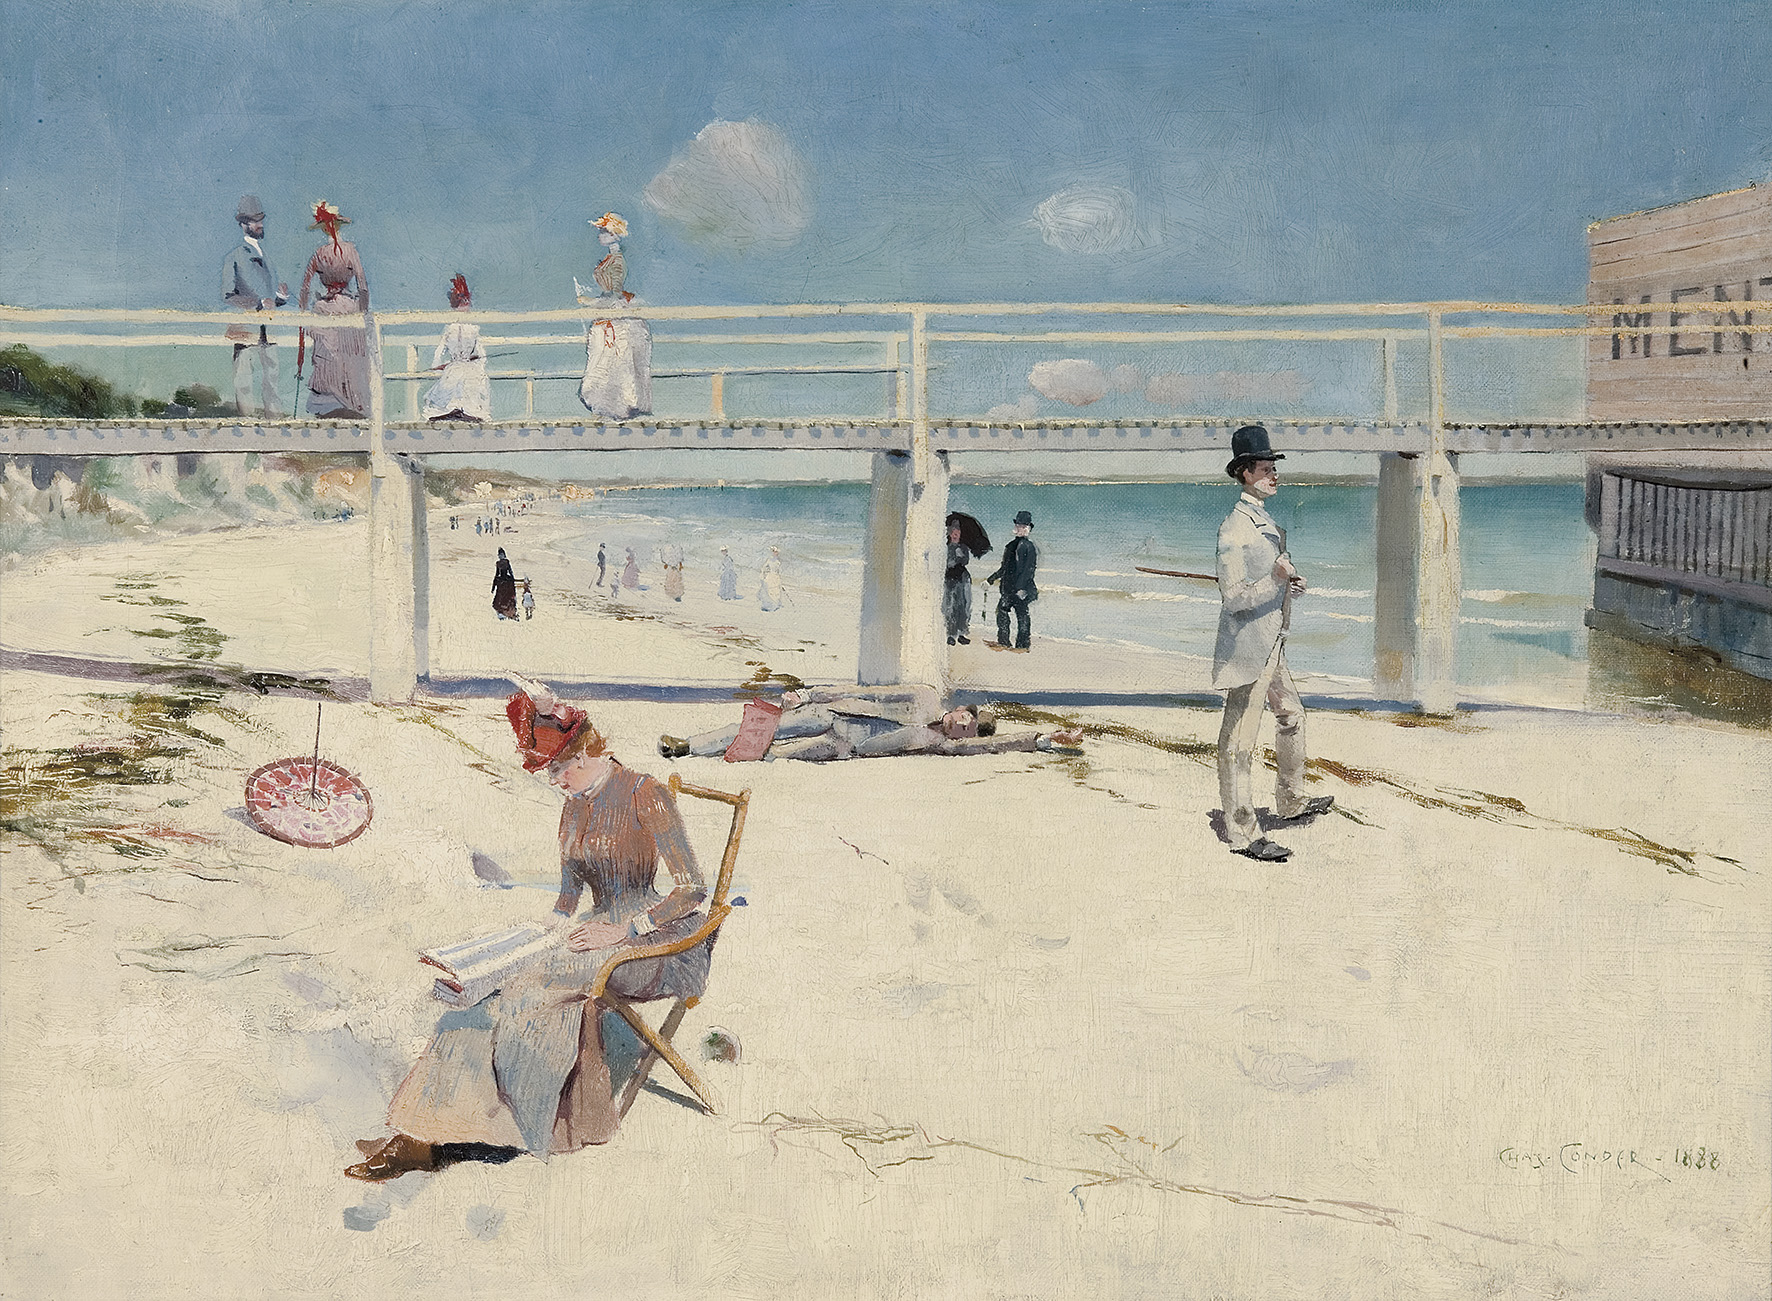 Charles Conder,  A Holiday at Mentone , 1888, Oil on canvas 46.2 x 60.8 cm Art Gallery of South Australia, Adelaide. South Australian Government Grant with the assistance of Bond Corporation Holdings Limited through the Art Gallery of South Australia Foundation to mark the Gallery's Centenary 1981 © Art Gallery of South Australia, Adelaide